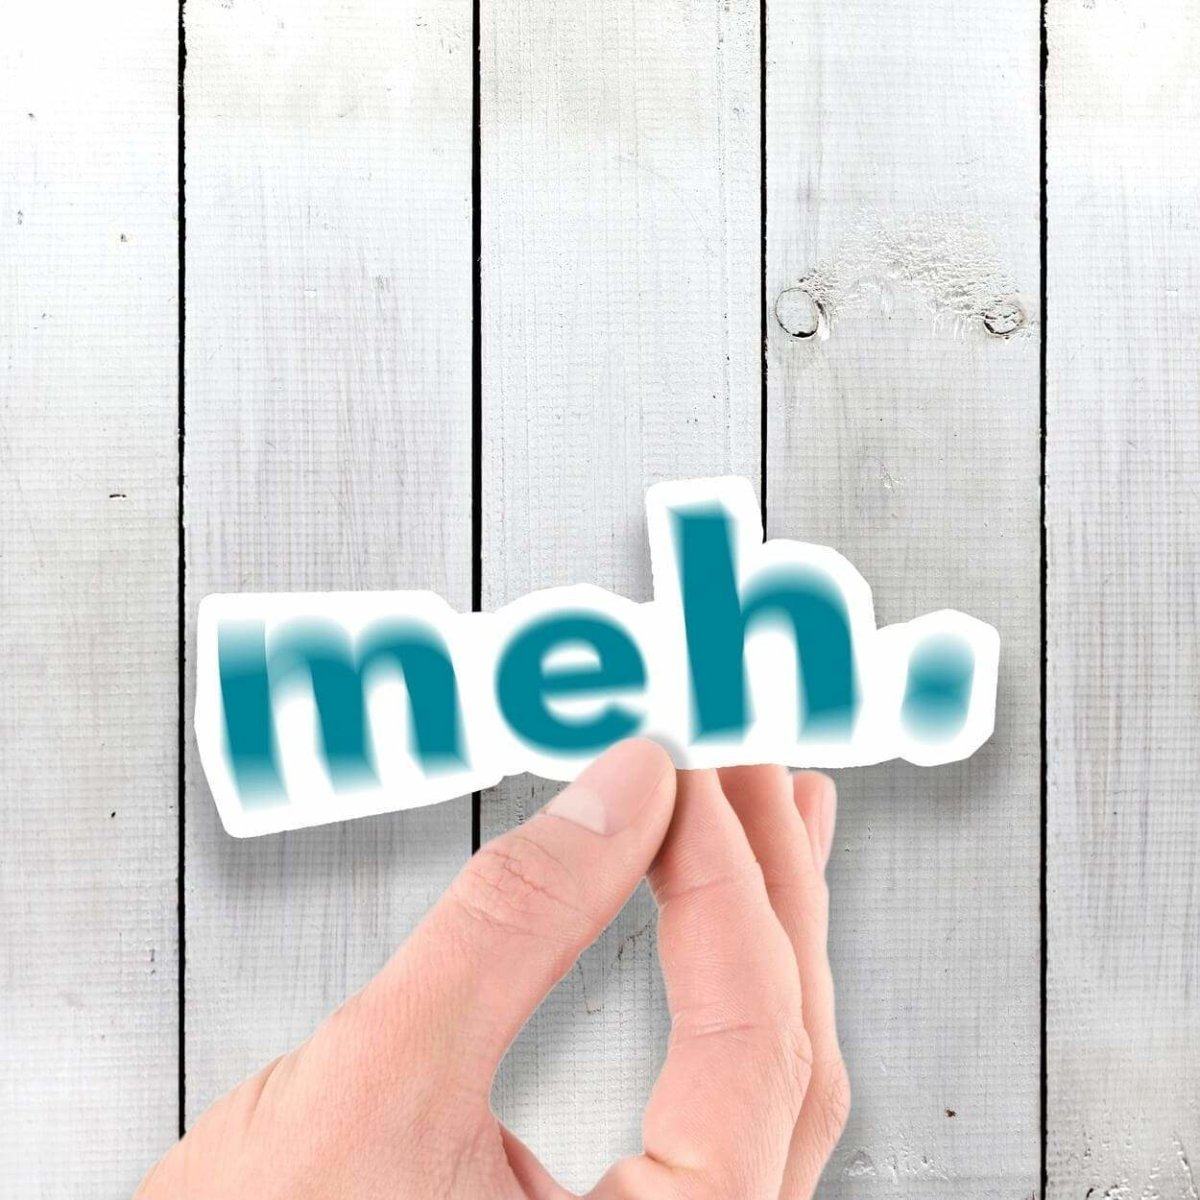 MEH - Vinyl Sticker - Dan Pearce Sticker Shop